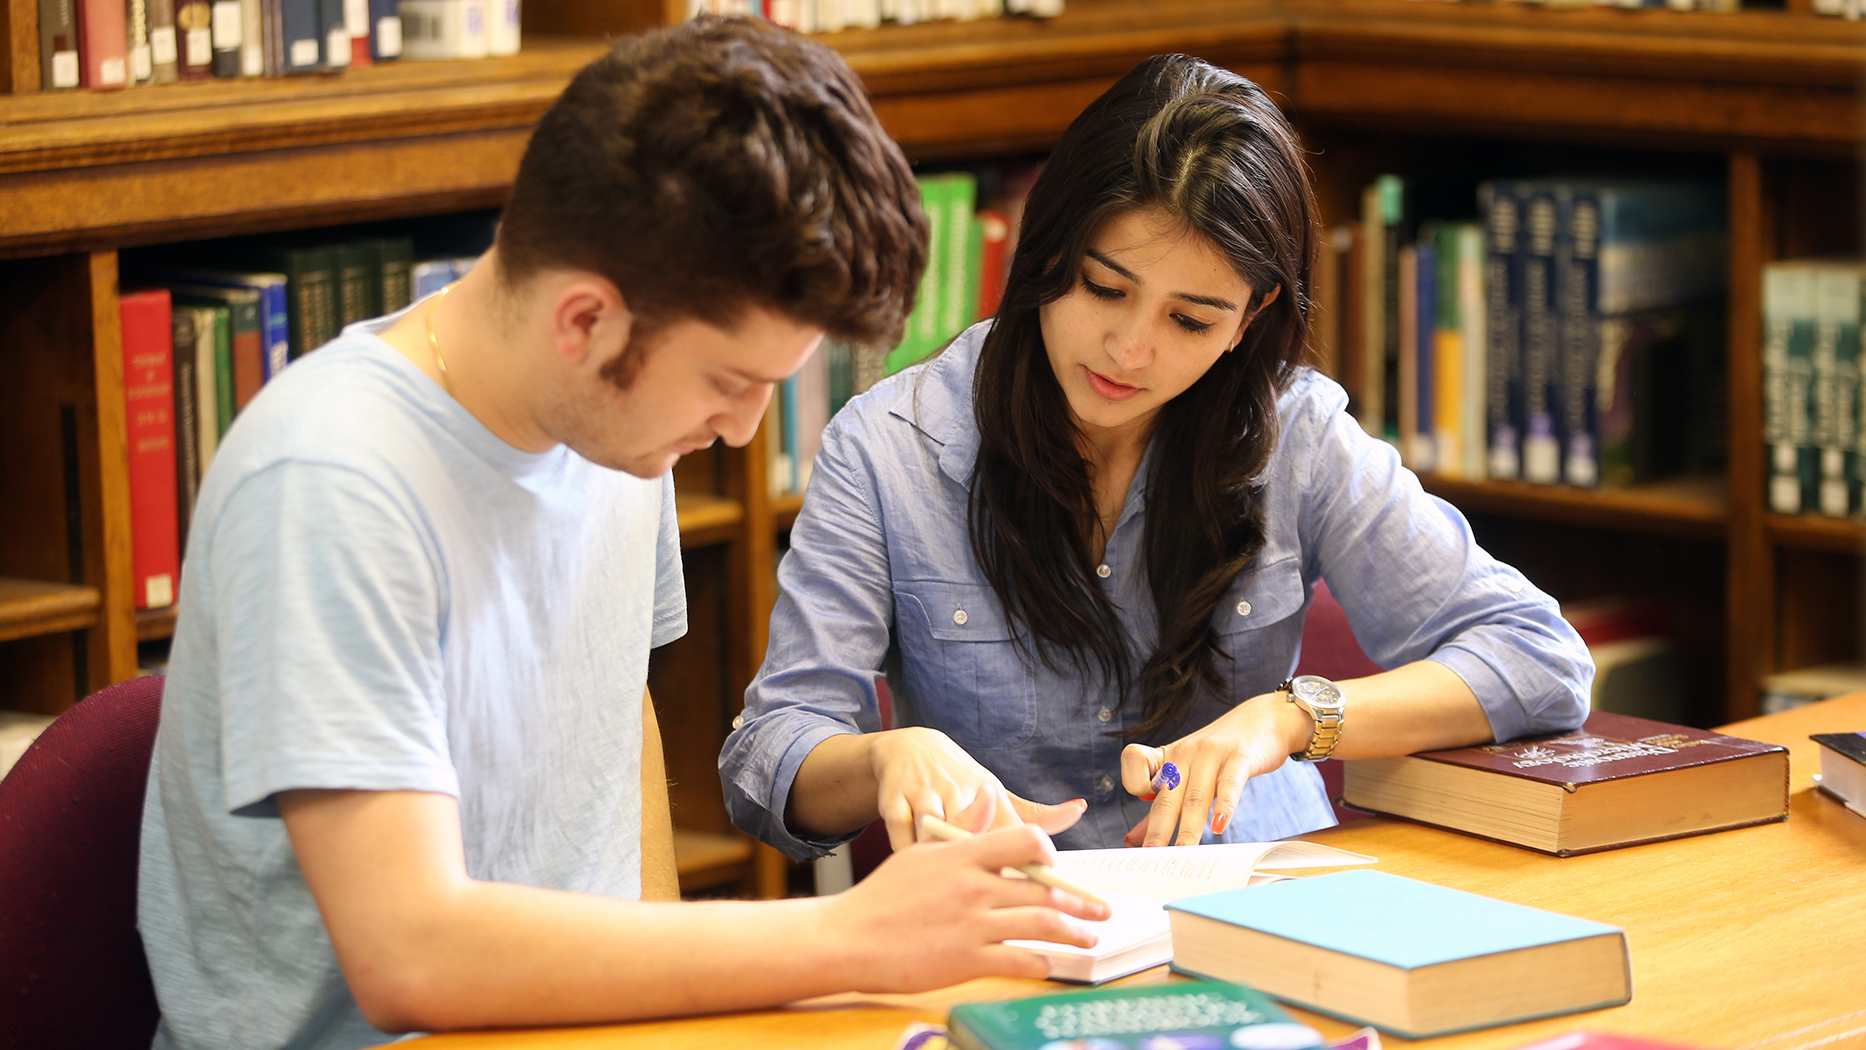 essays on work experience The essays can be the most important components of your application read selected examples of essays that worked a part of the human experience that it seems.